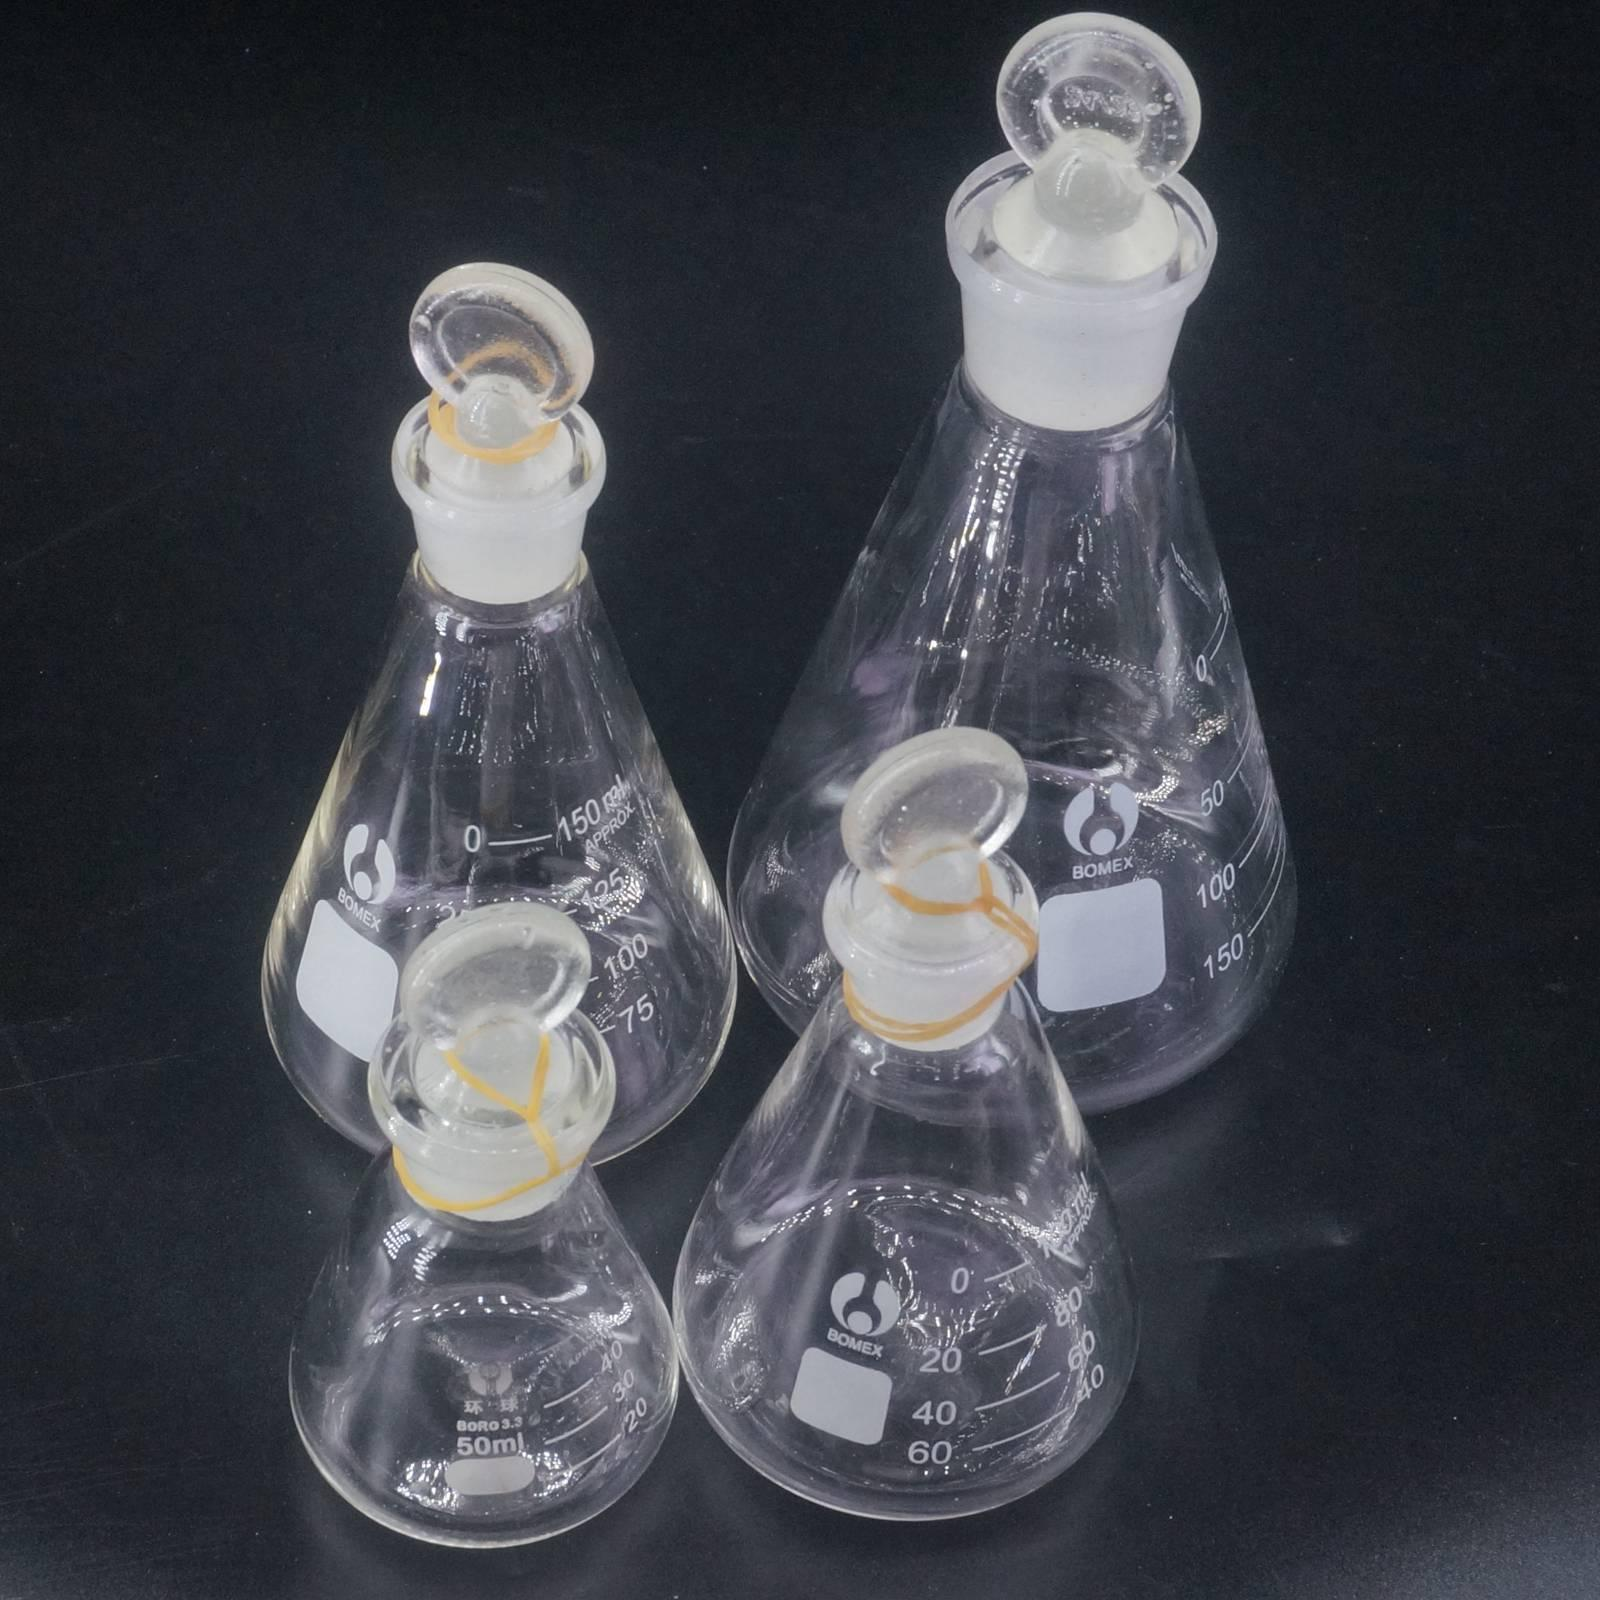 50ml 100ml 150ml 250ml 500ml 1000ml Lab Borosilicate Glass Erlenmeyer Conical Flask With Ground-in Stopper